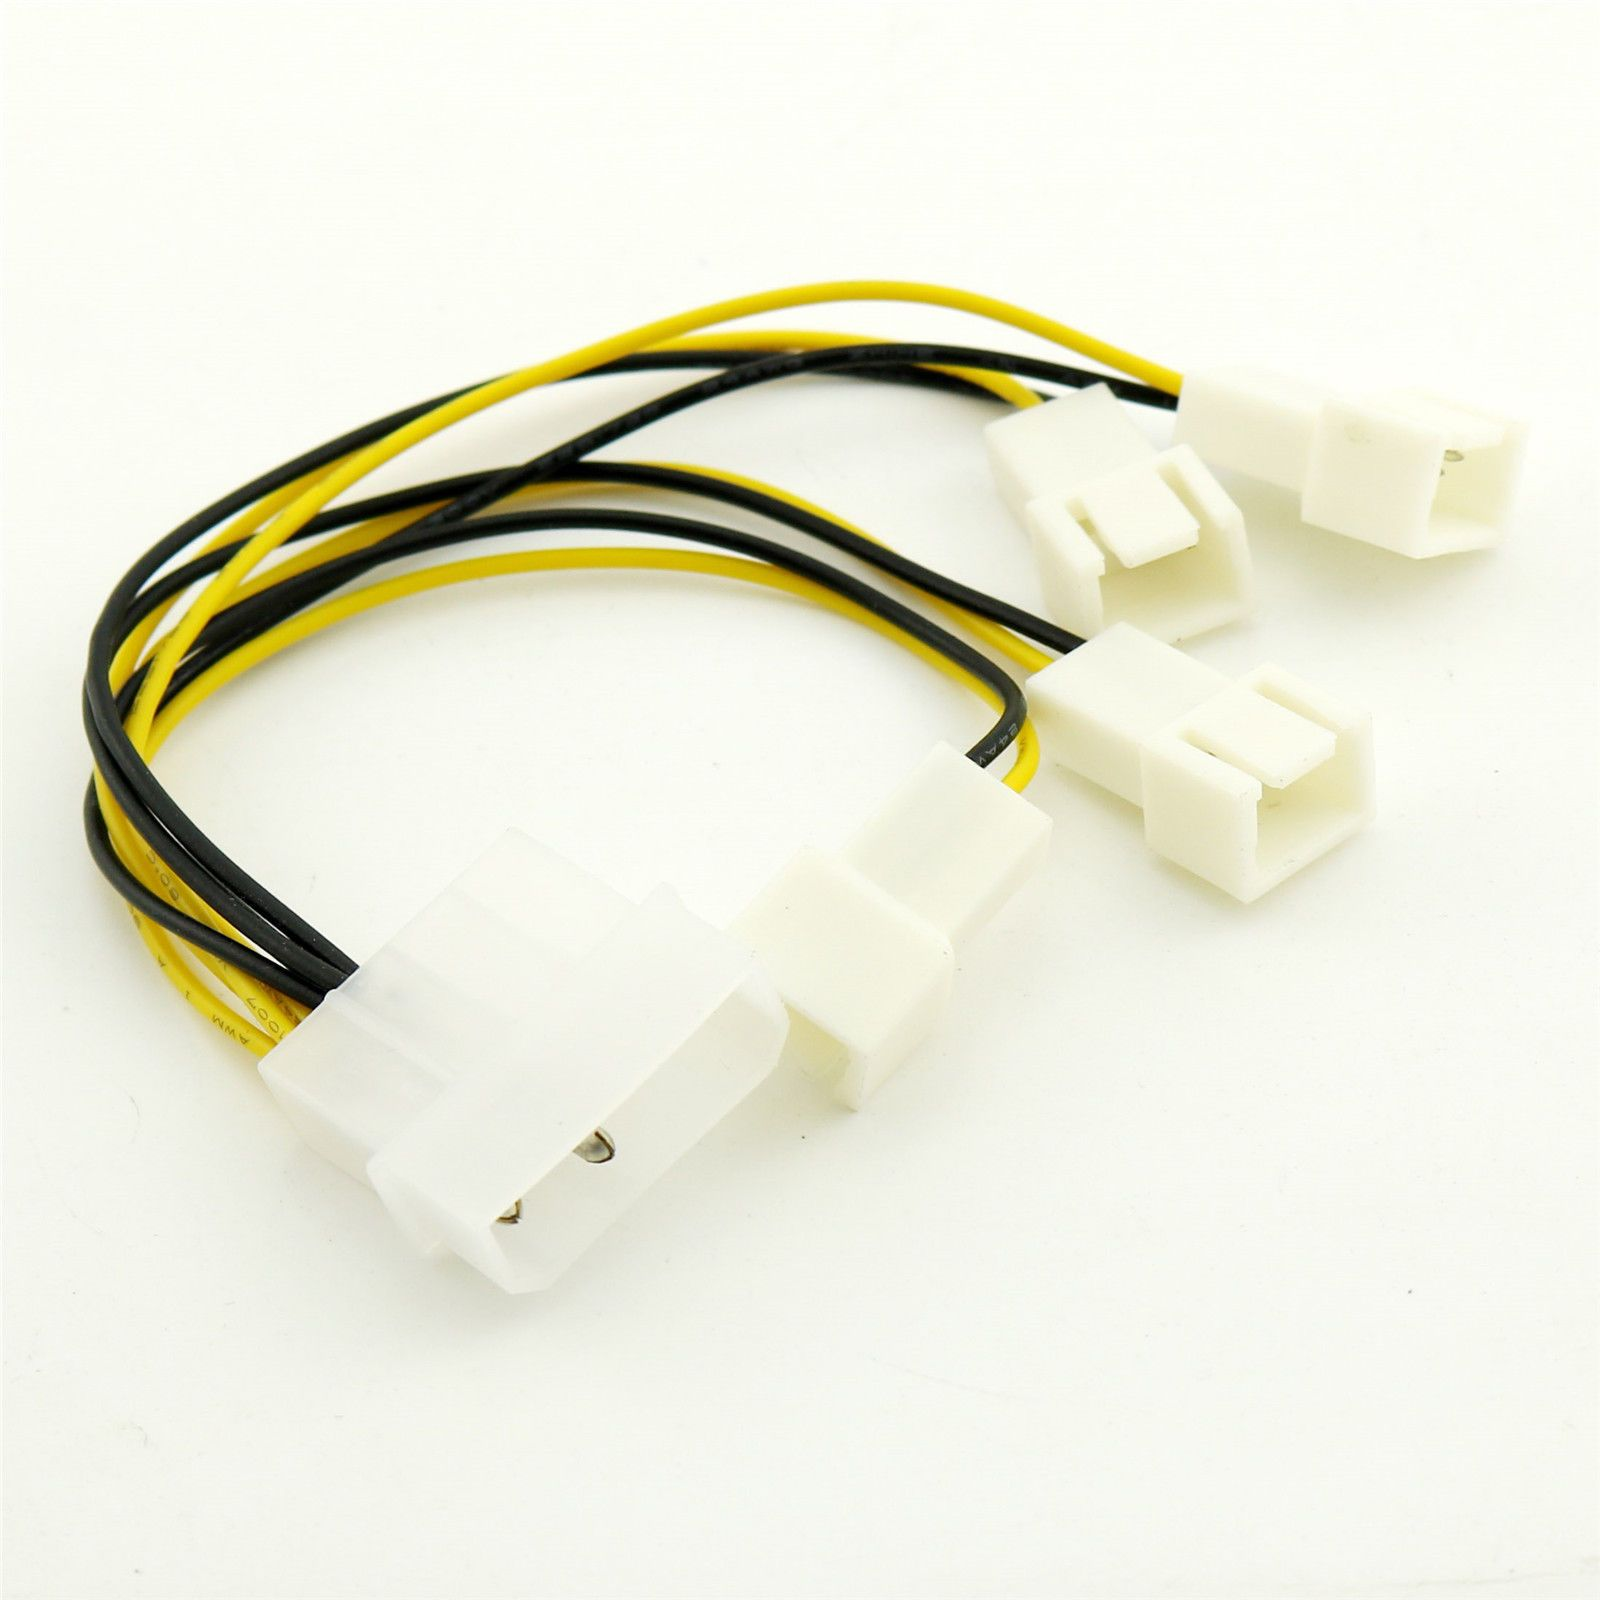 1 39 1pc molex male to 4 way 3 pin computer power multi fan splitter adapter [ 1600 x 1600 Pixel ]